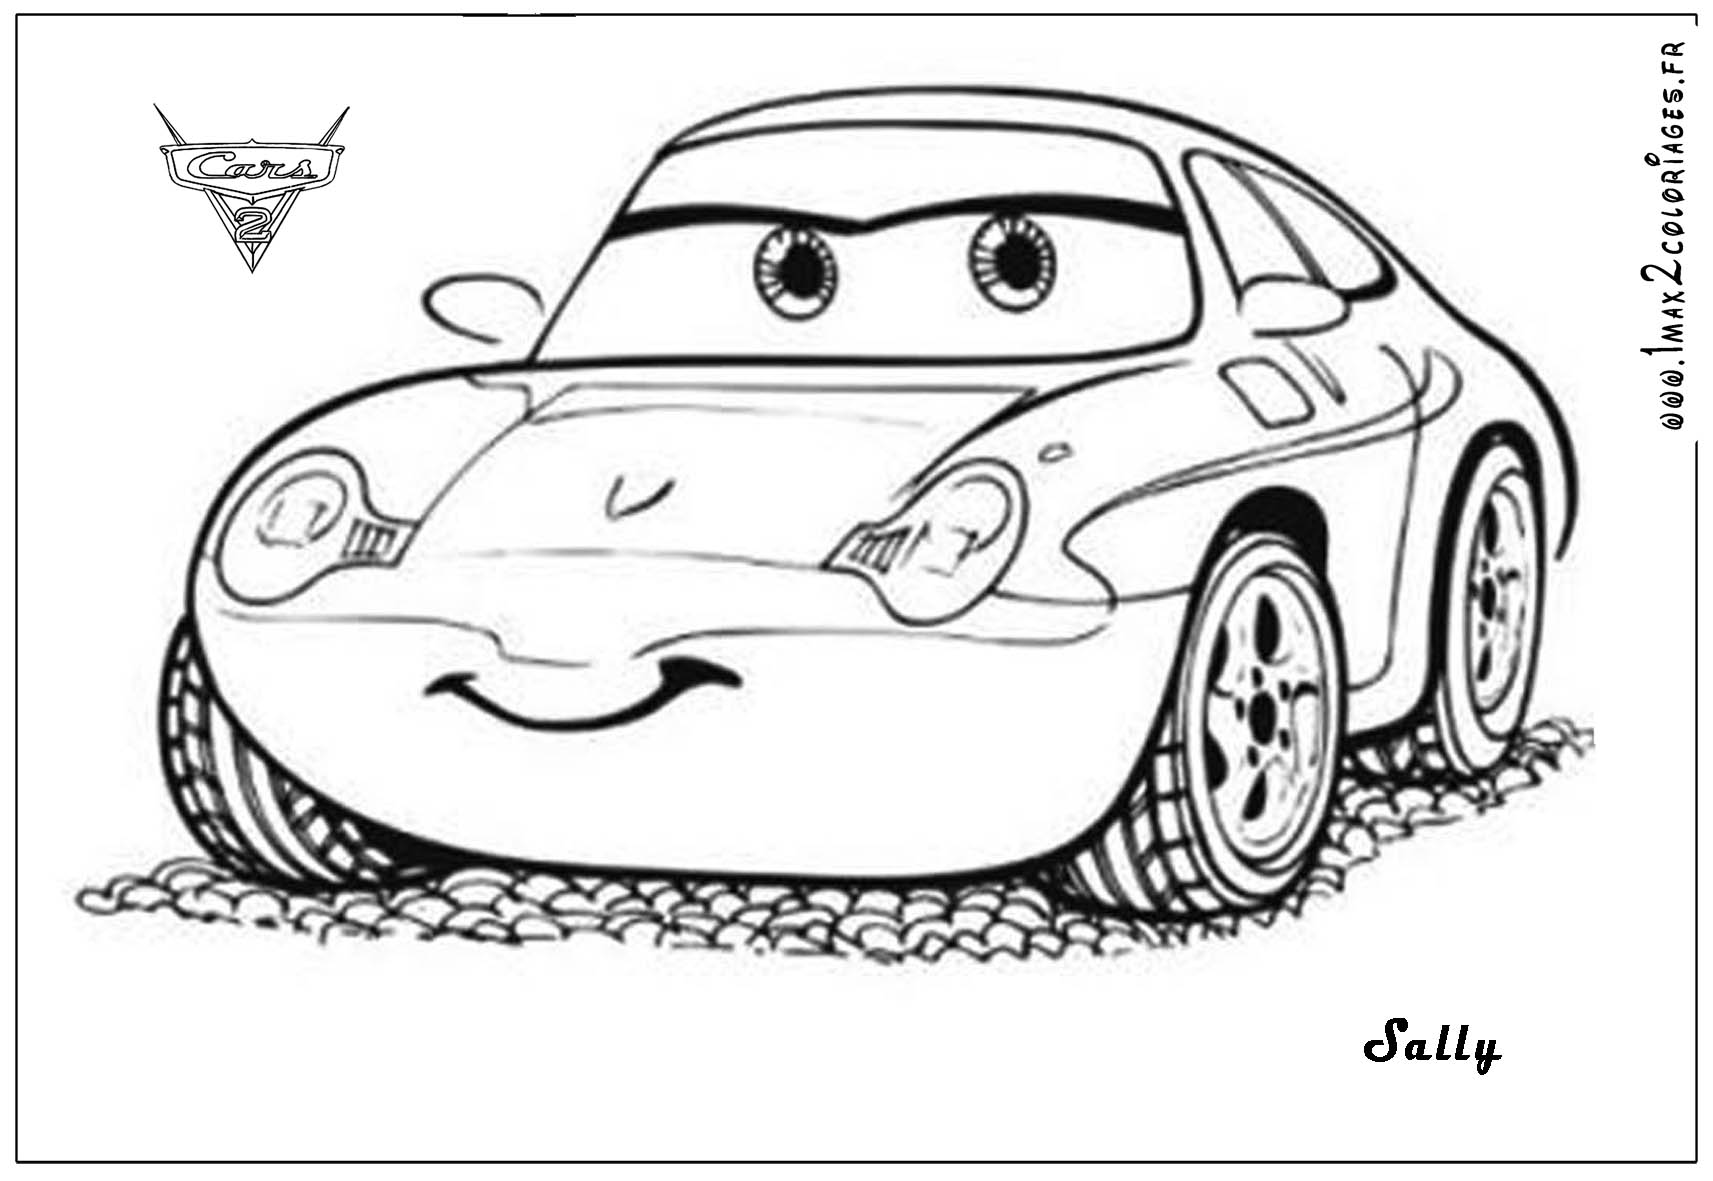 Coloriages cars 2 sally cars 2 coloriages les bagnoles 2 - Cars 2 coloriage ...